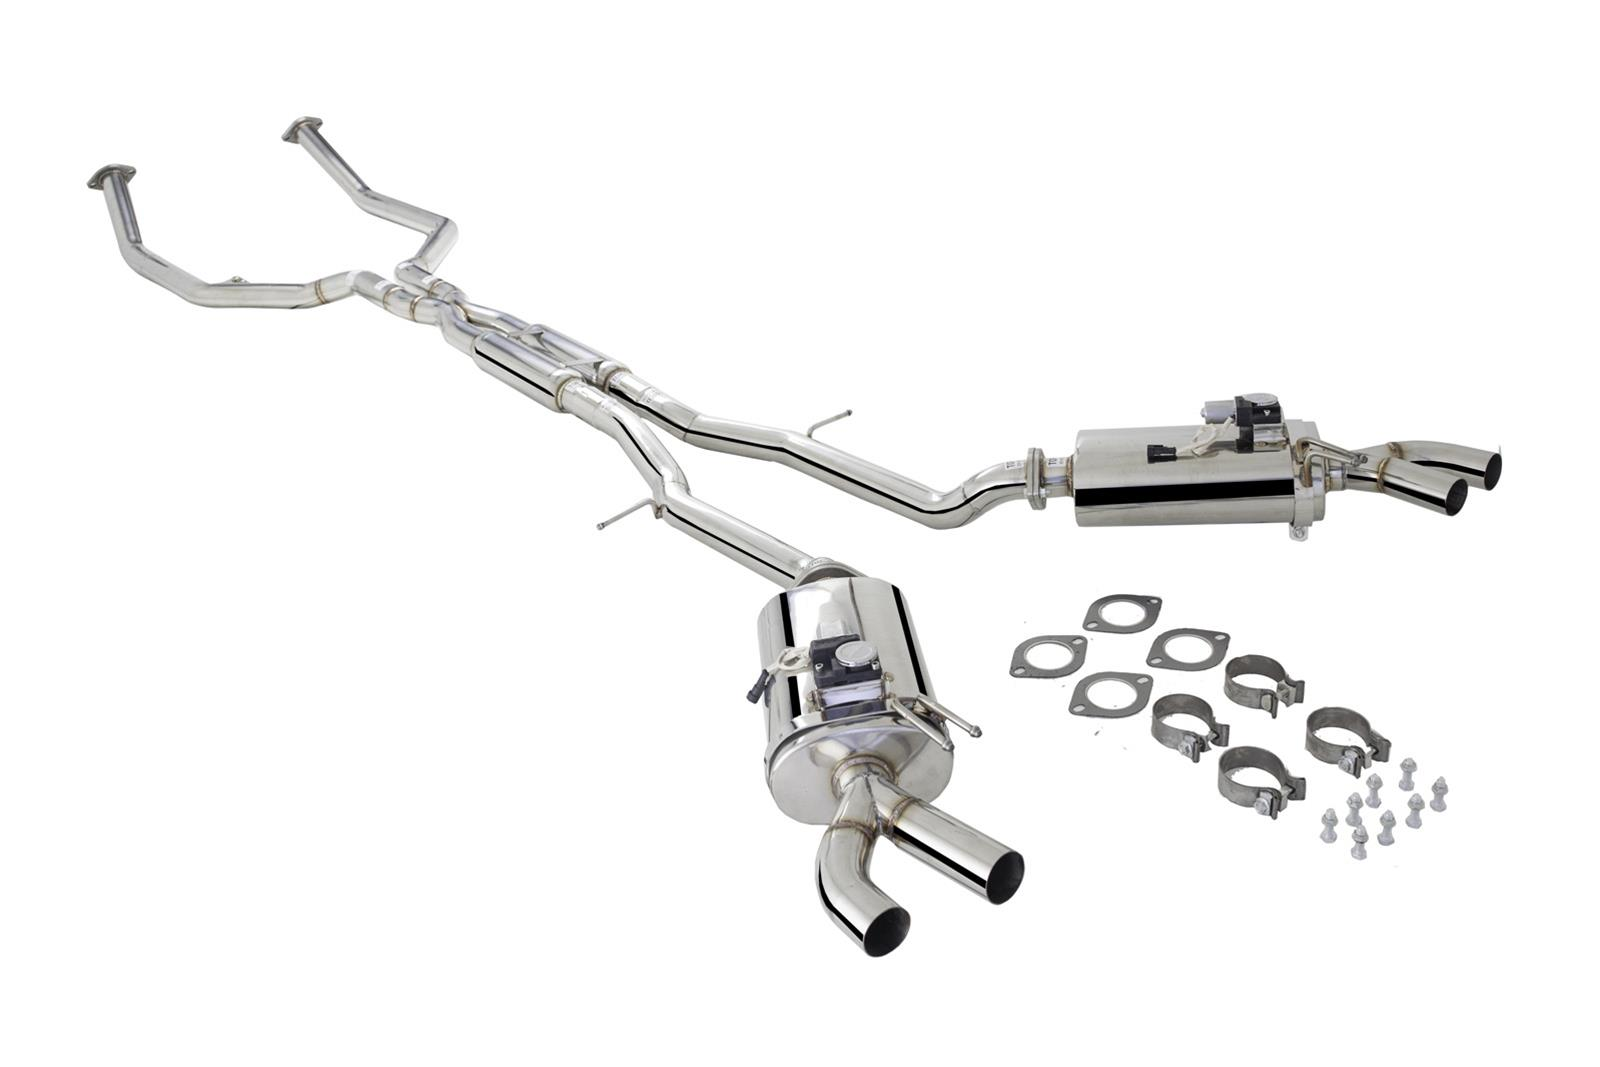 Kia Stinger Xforce Varex Exhaust Systems Es Ks17 Vmk Cbs